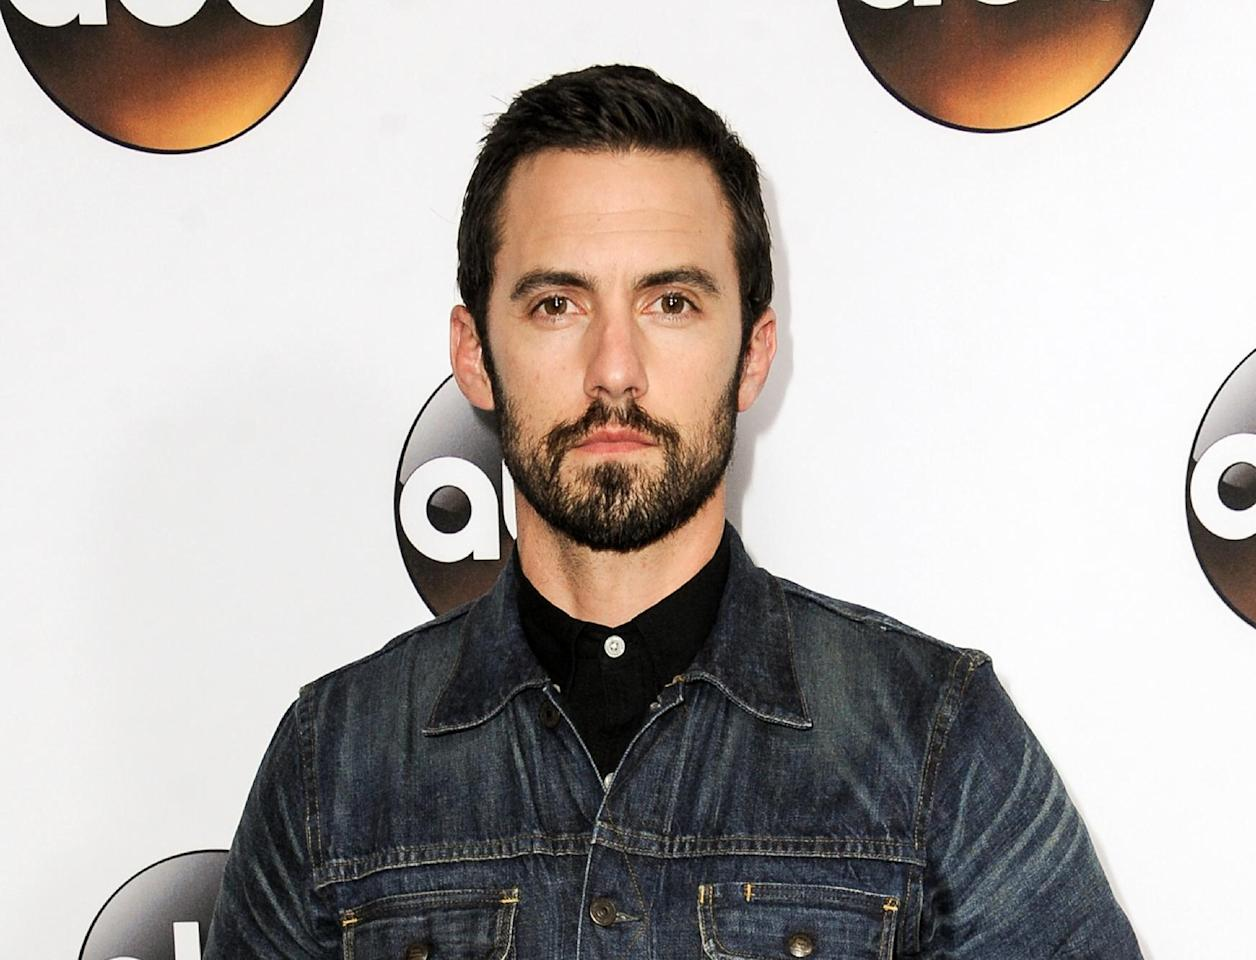 """FILE - In this Jan. 14, 2015 file photo, Milo Ventimiglia arrives at the Disney/ABC Television Group 2015 Winter TCA Party in Pasadena, Calif. Netflix says that the """"Gilmore Girls"""" reboot will include Ventimiglia returning as Jess Mariano. They'll be joining previously announced stars Lauren Graham and Alexis Bledel, who are reprising their roles as mom Lorelai and daughter Rory from the 2000 to 2007 broadcast network series. (Photo by Richard Shotwell/Invision/AP, File)"""